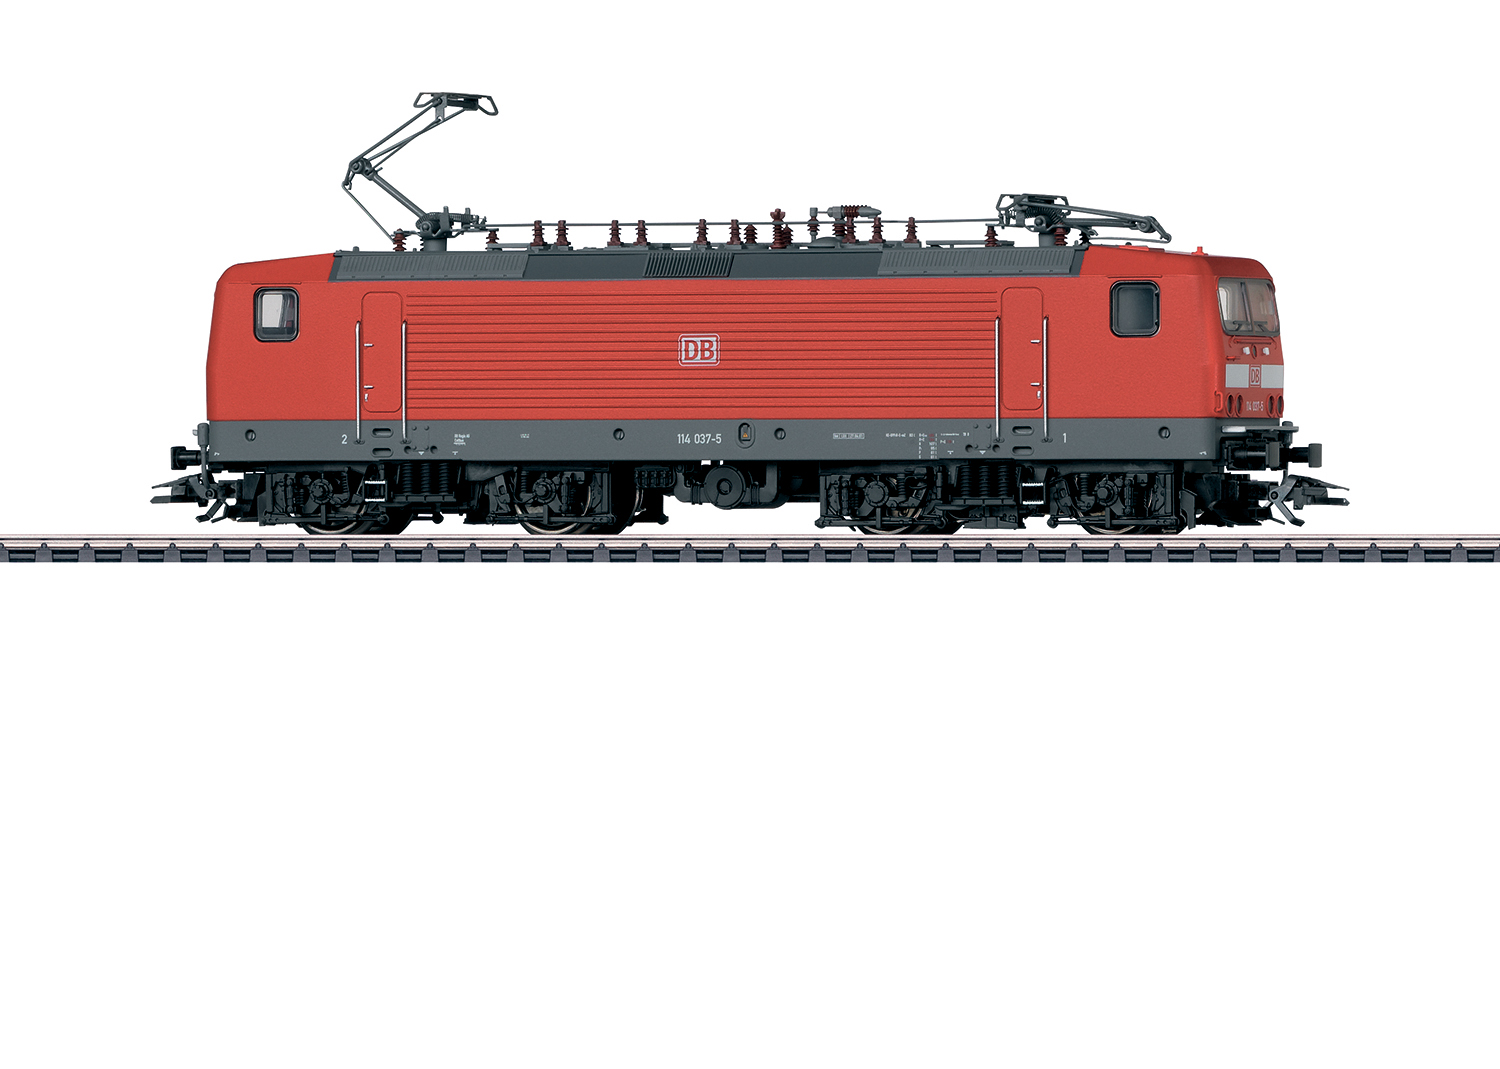 Class 114 Electric Locomotive